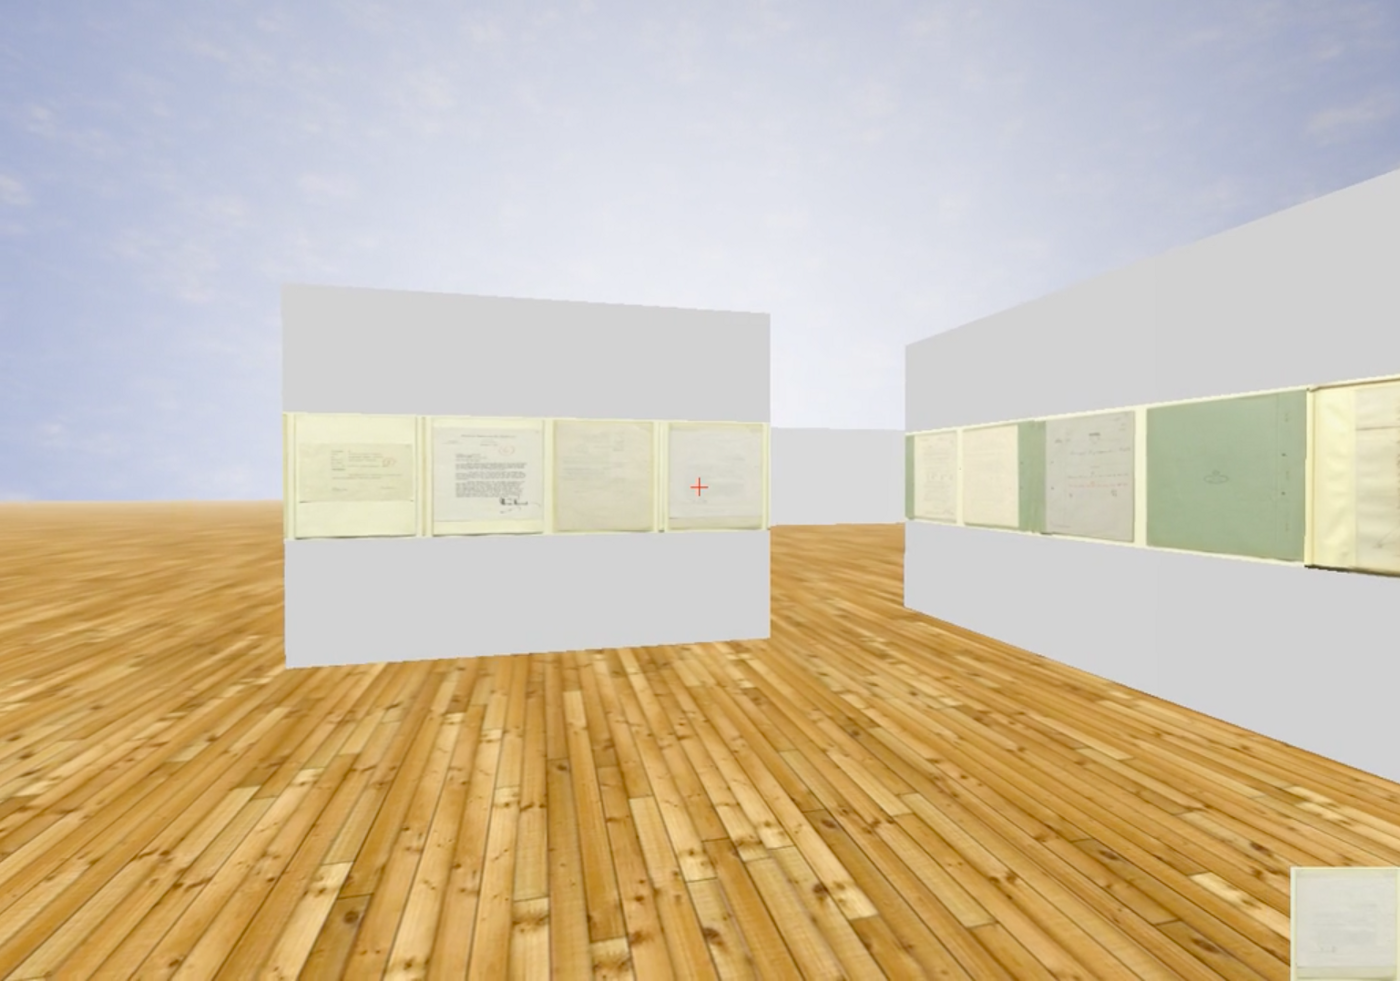 How to create a virtual 3D gallery using IIIF and Three js